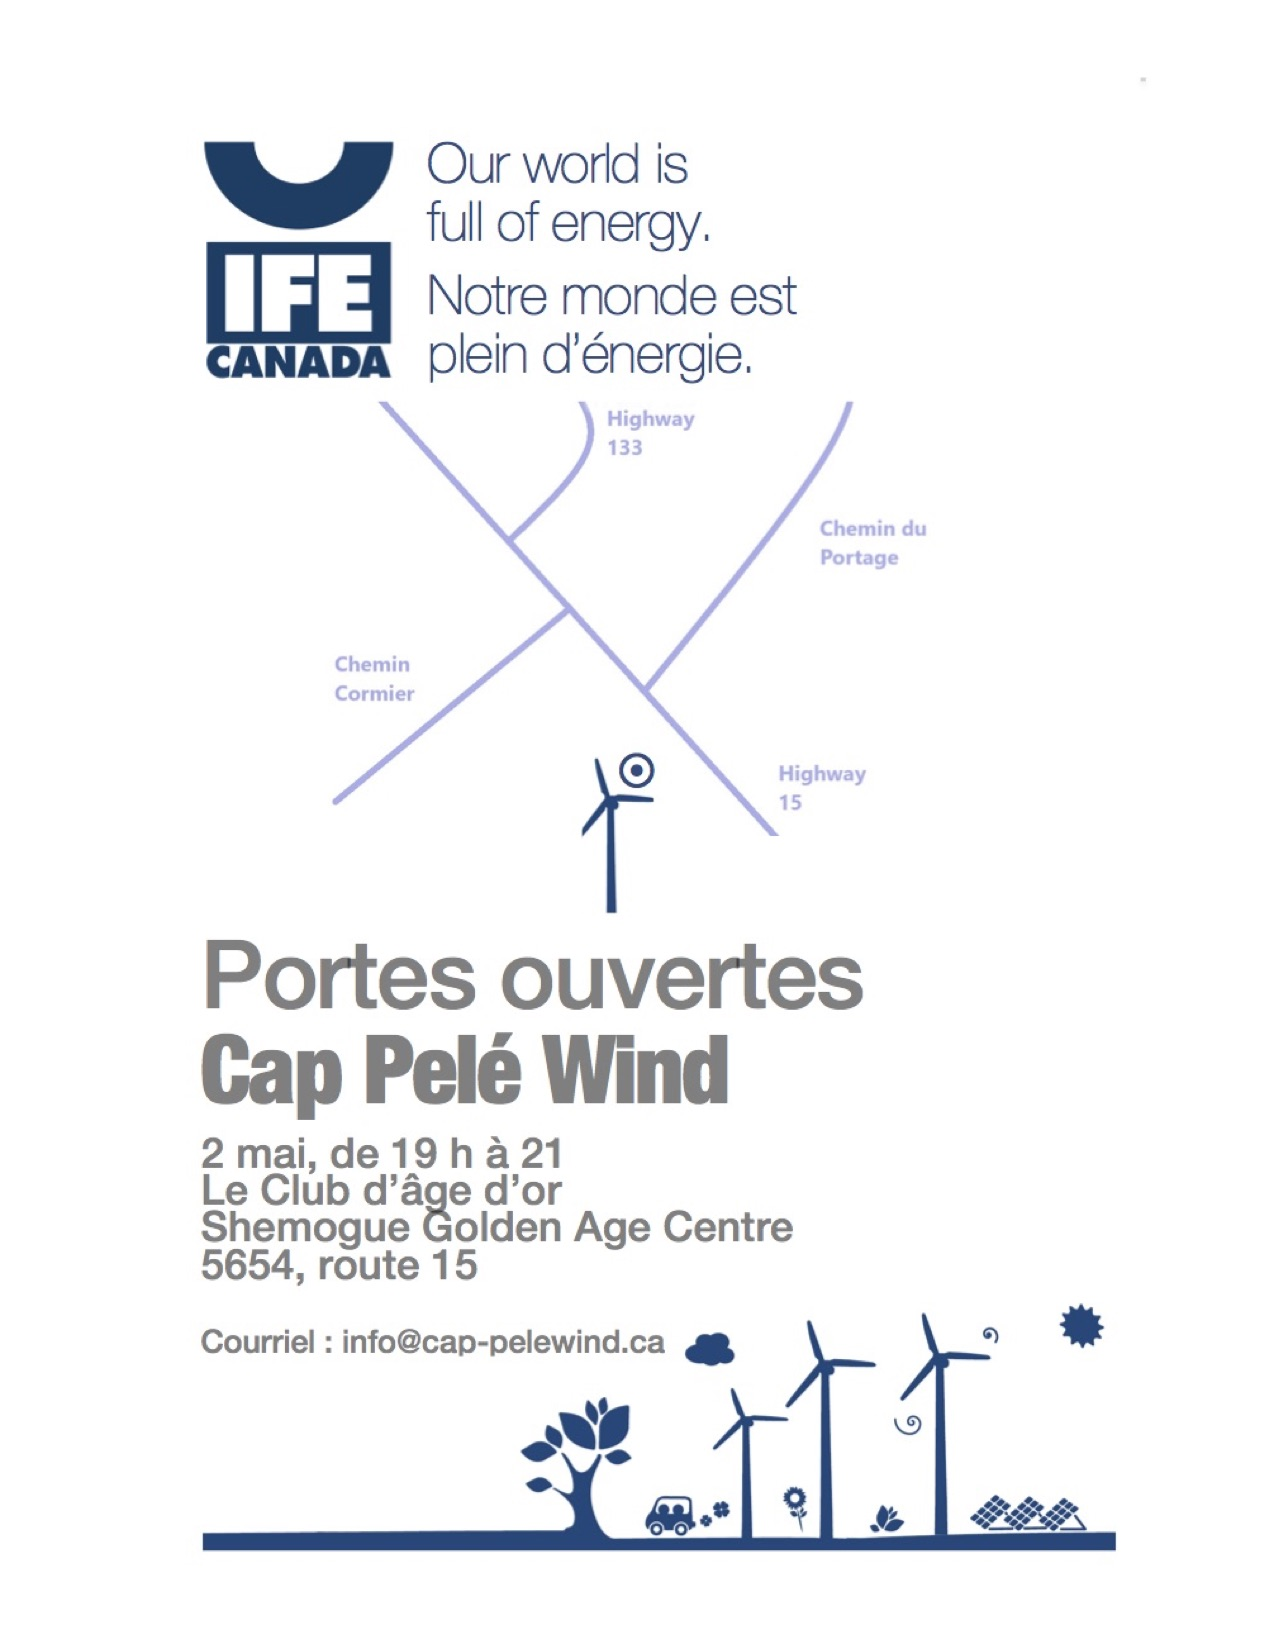 May 2 Invitation in French